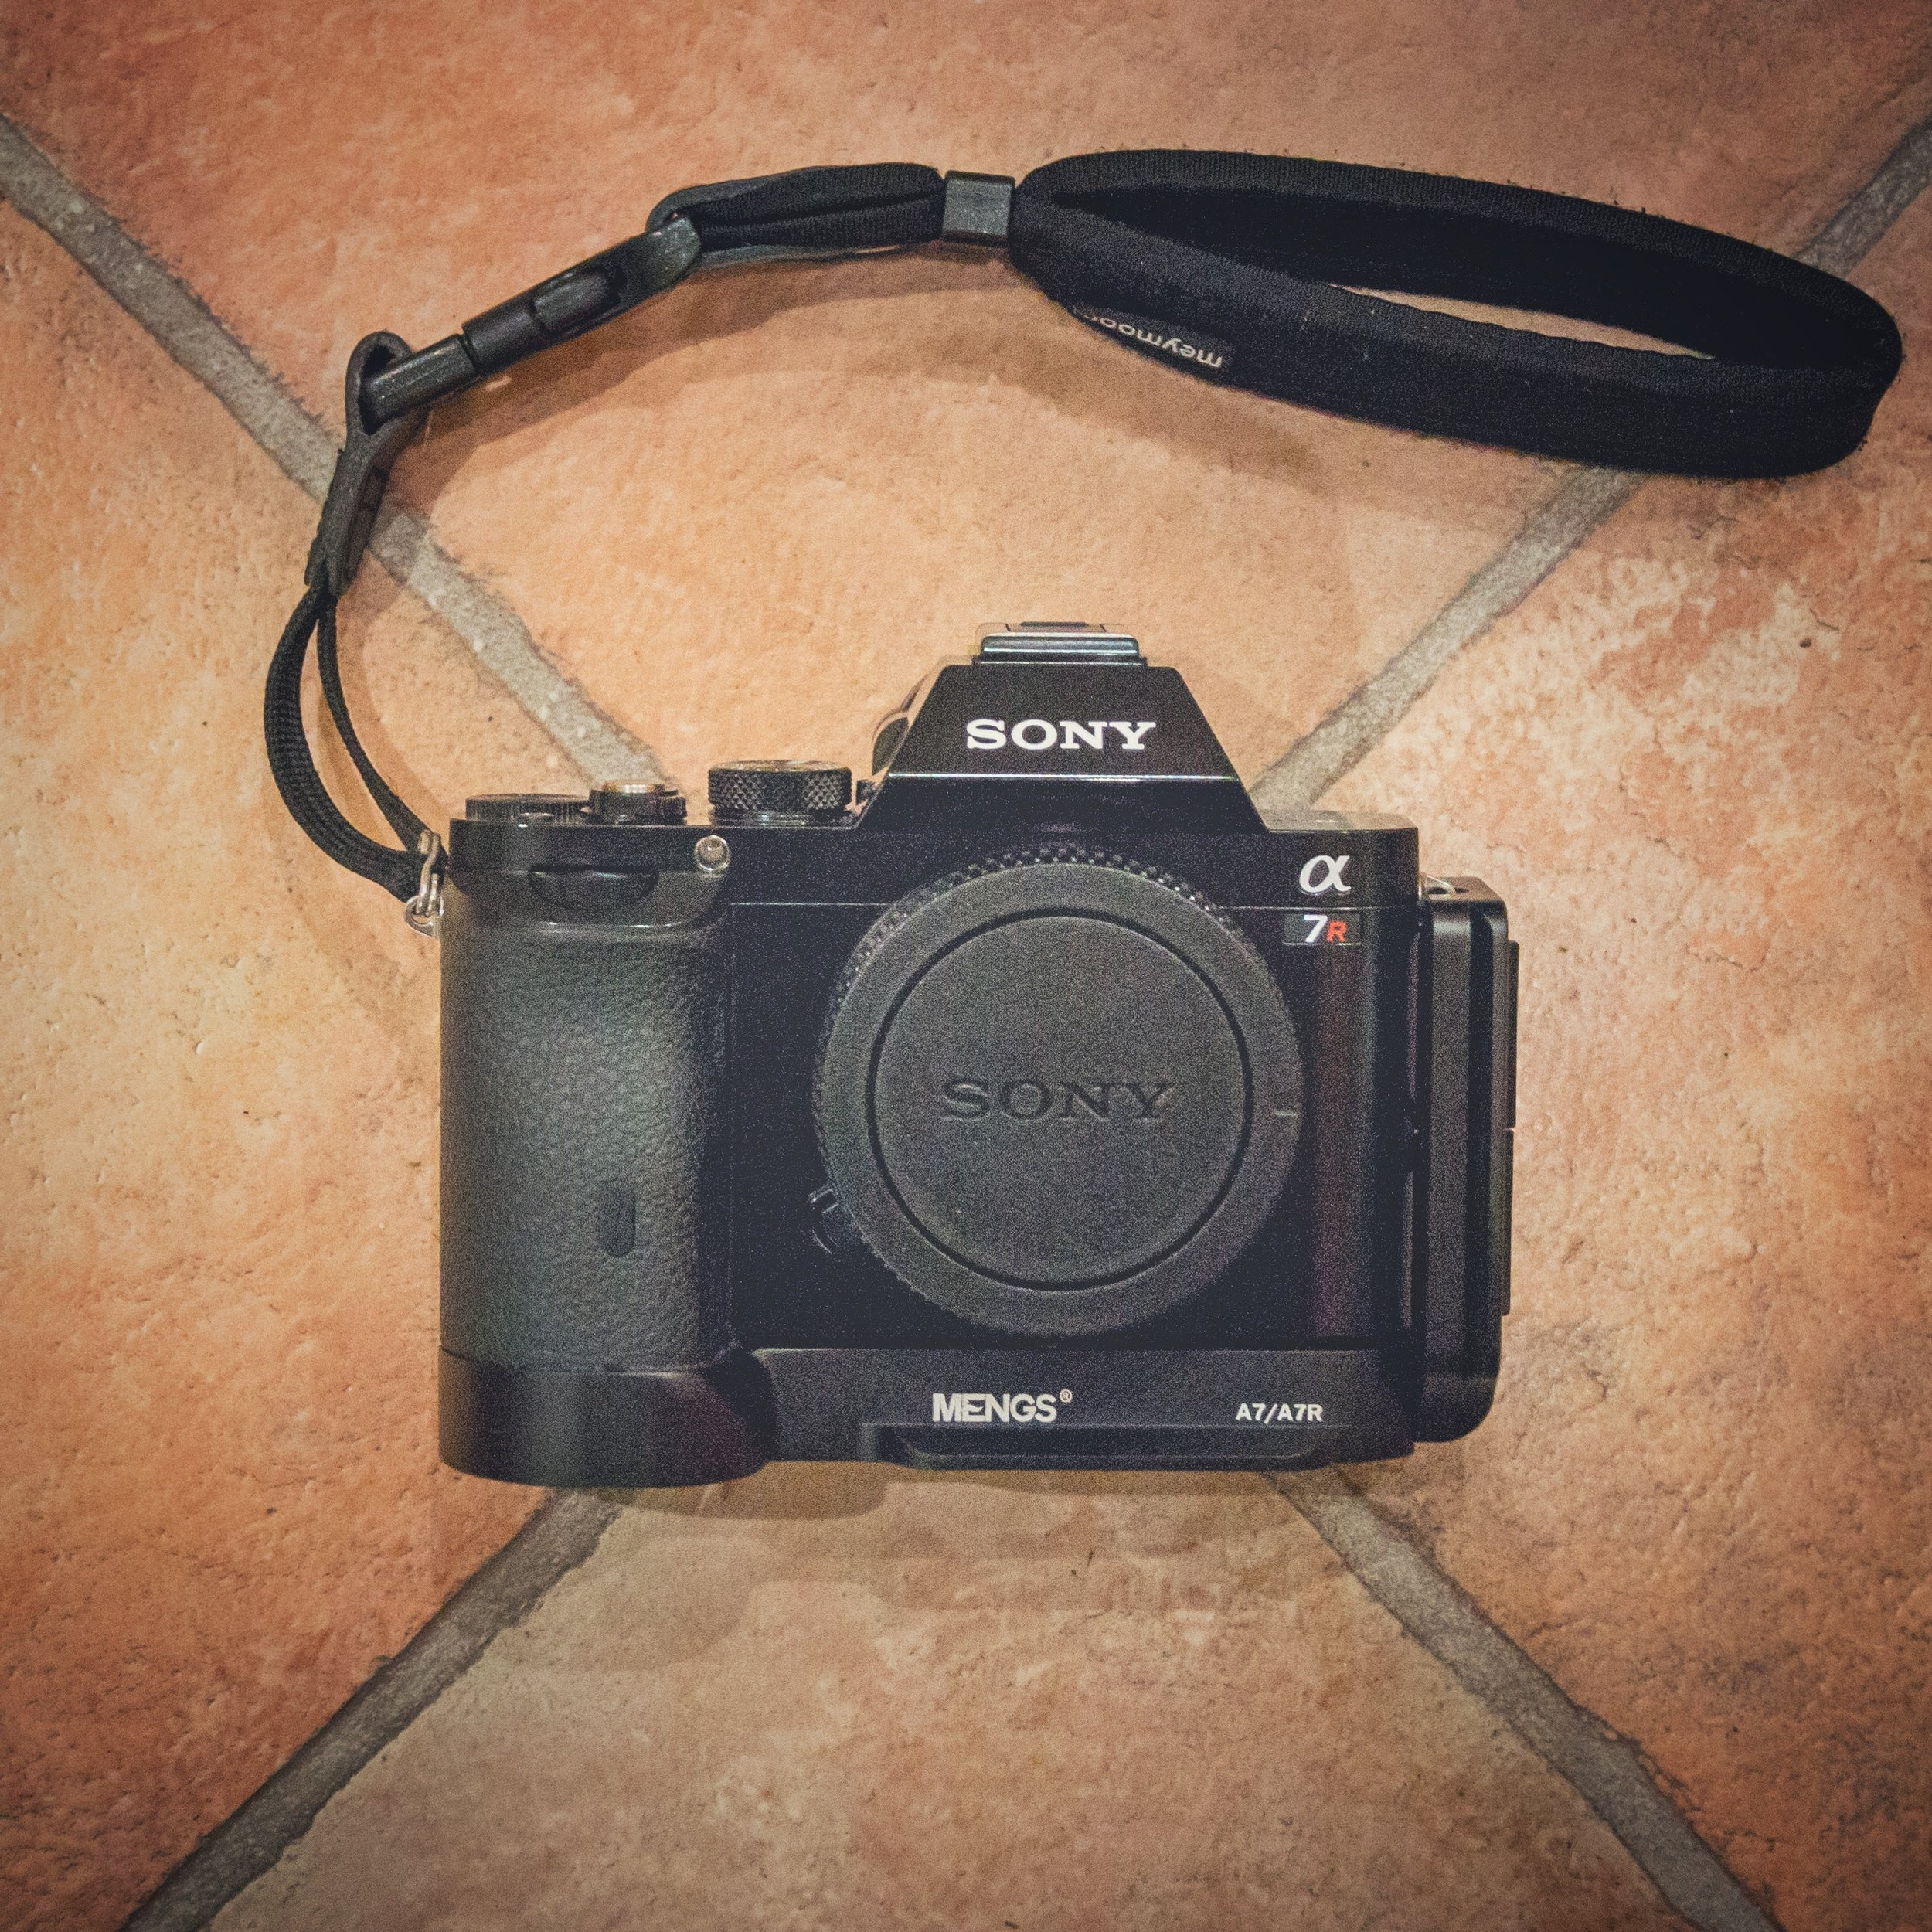 #2 - The Camera - I am shooting with a Sony A7R.